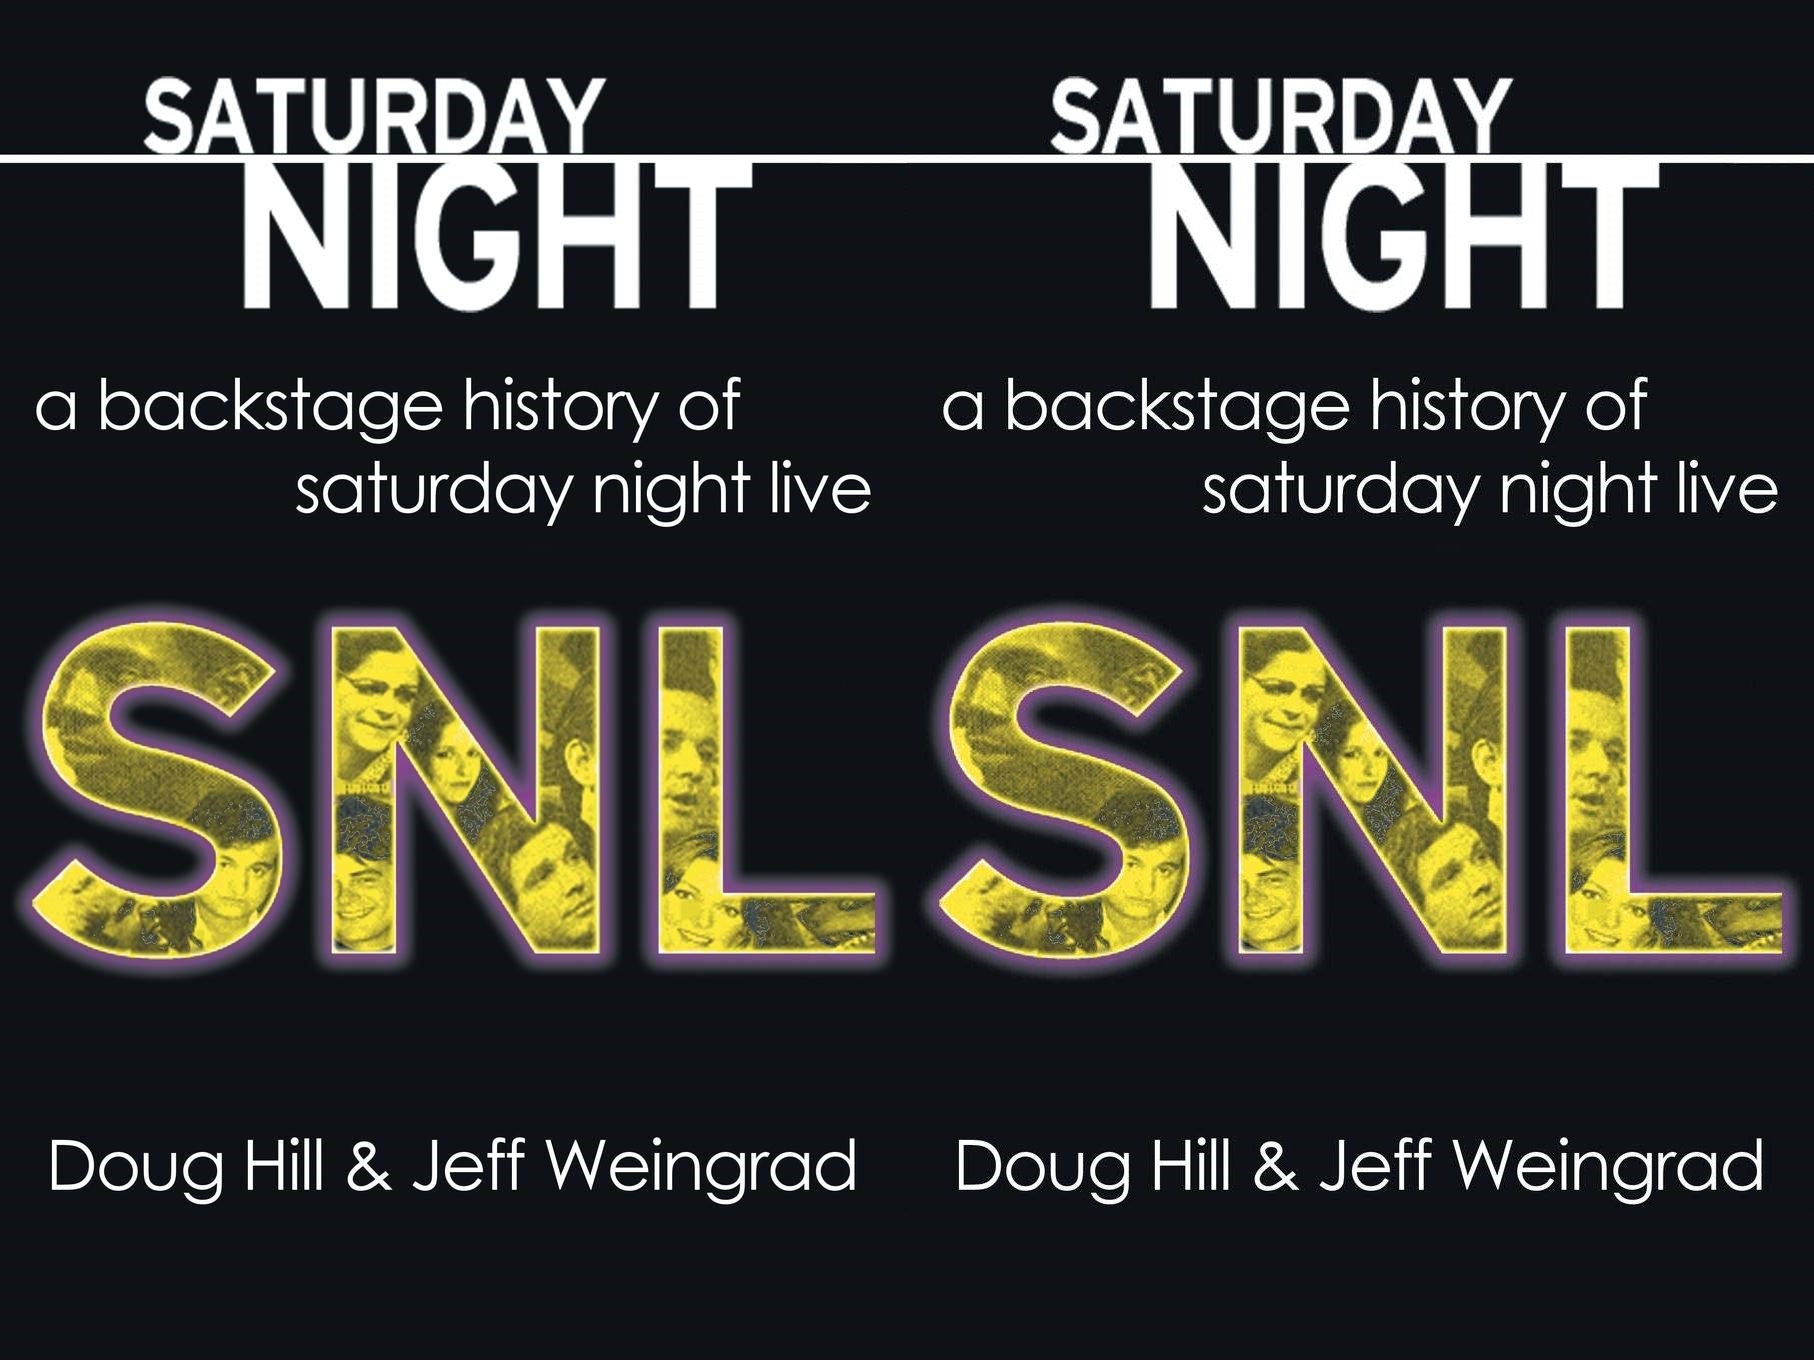 saturday night live books, saturday night: a backstage history of saturday night live by doug hill and jeff weingrad, books